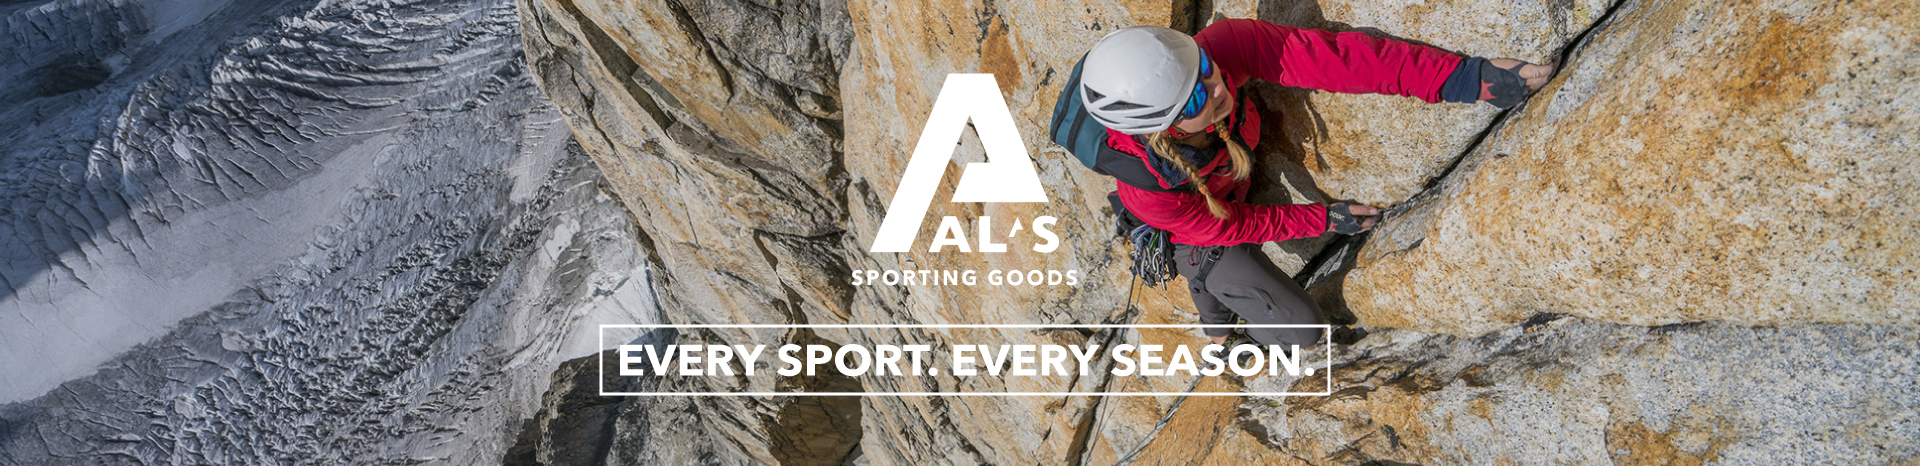 Al's Sporting Goods. Every Sport. Every Season.